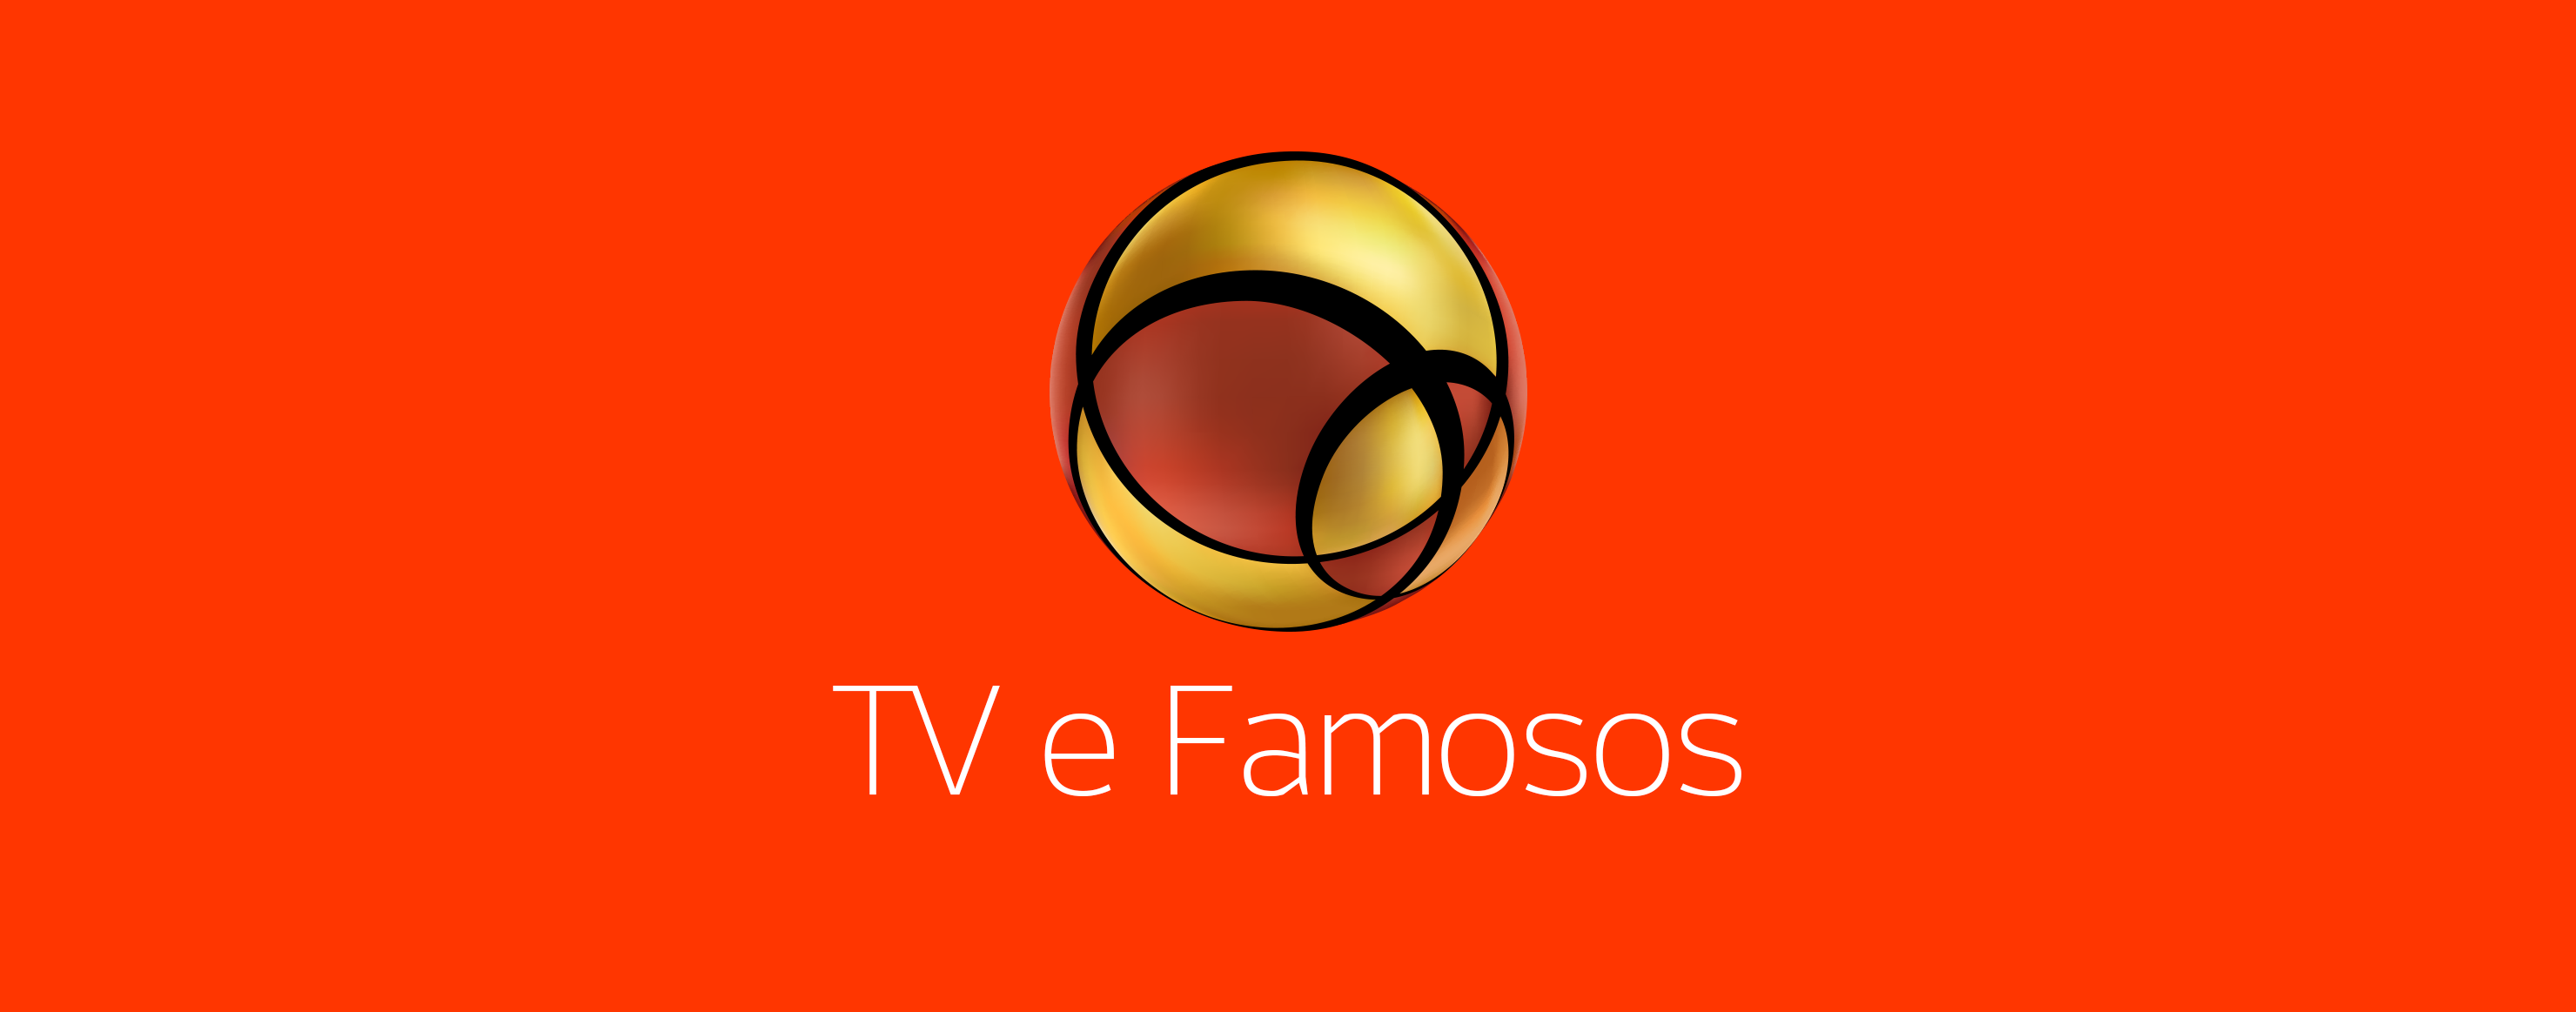 View UOL TV e Famosos: Novelas, séries, BBB, reality shows e programas de TV outages and uptime